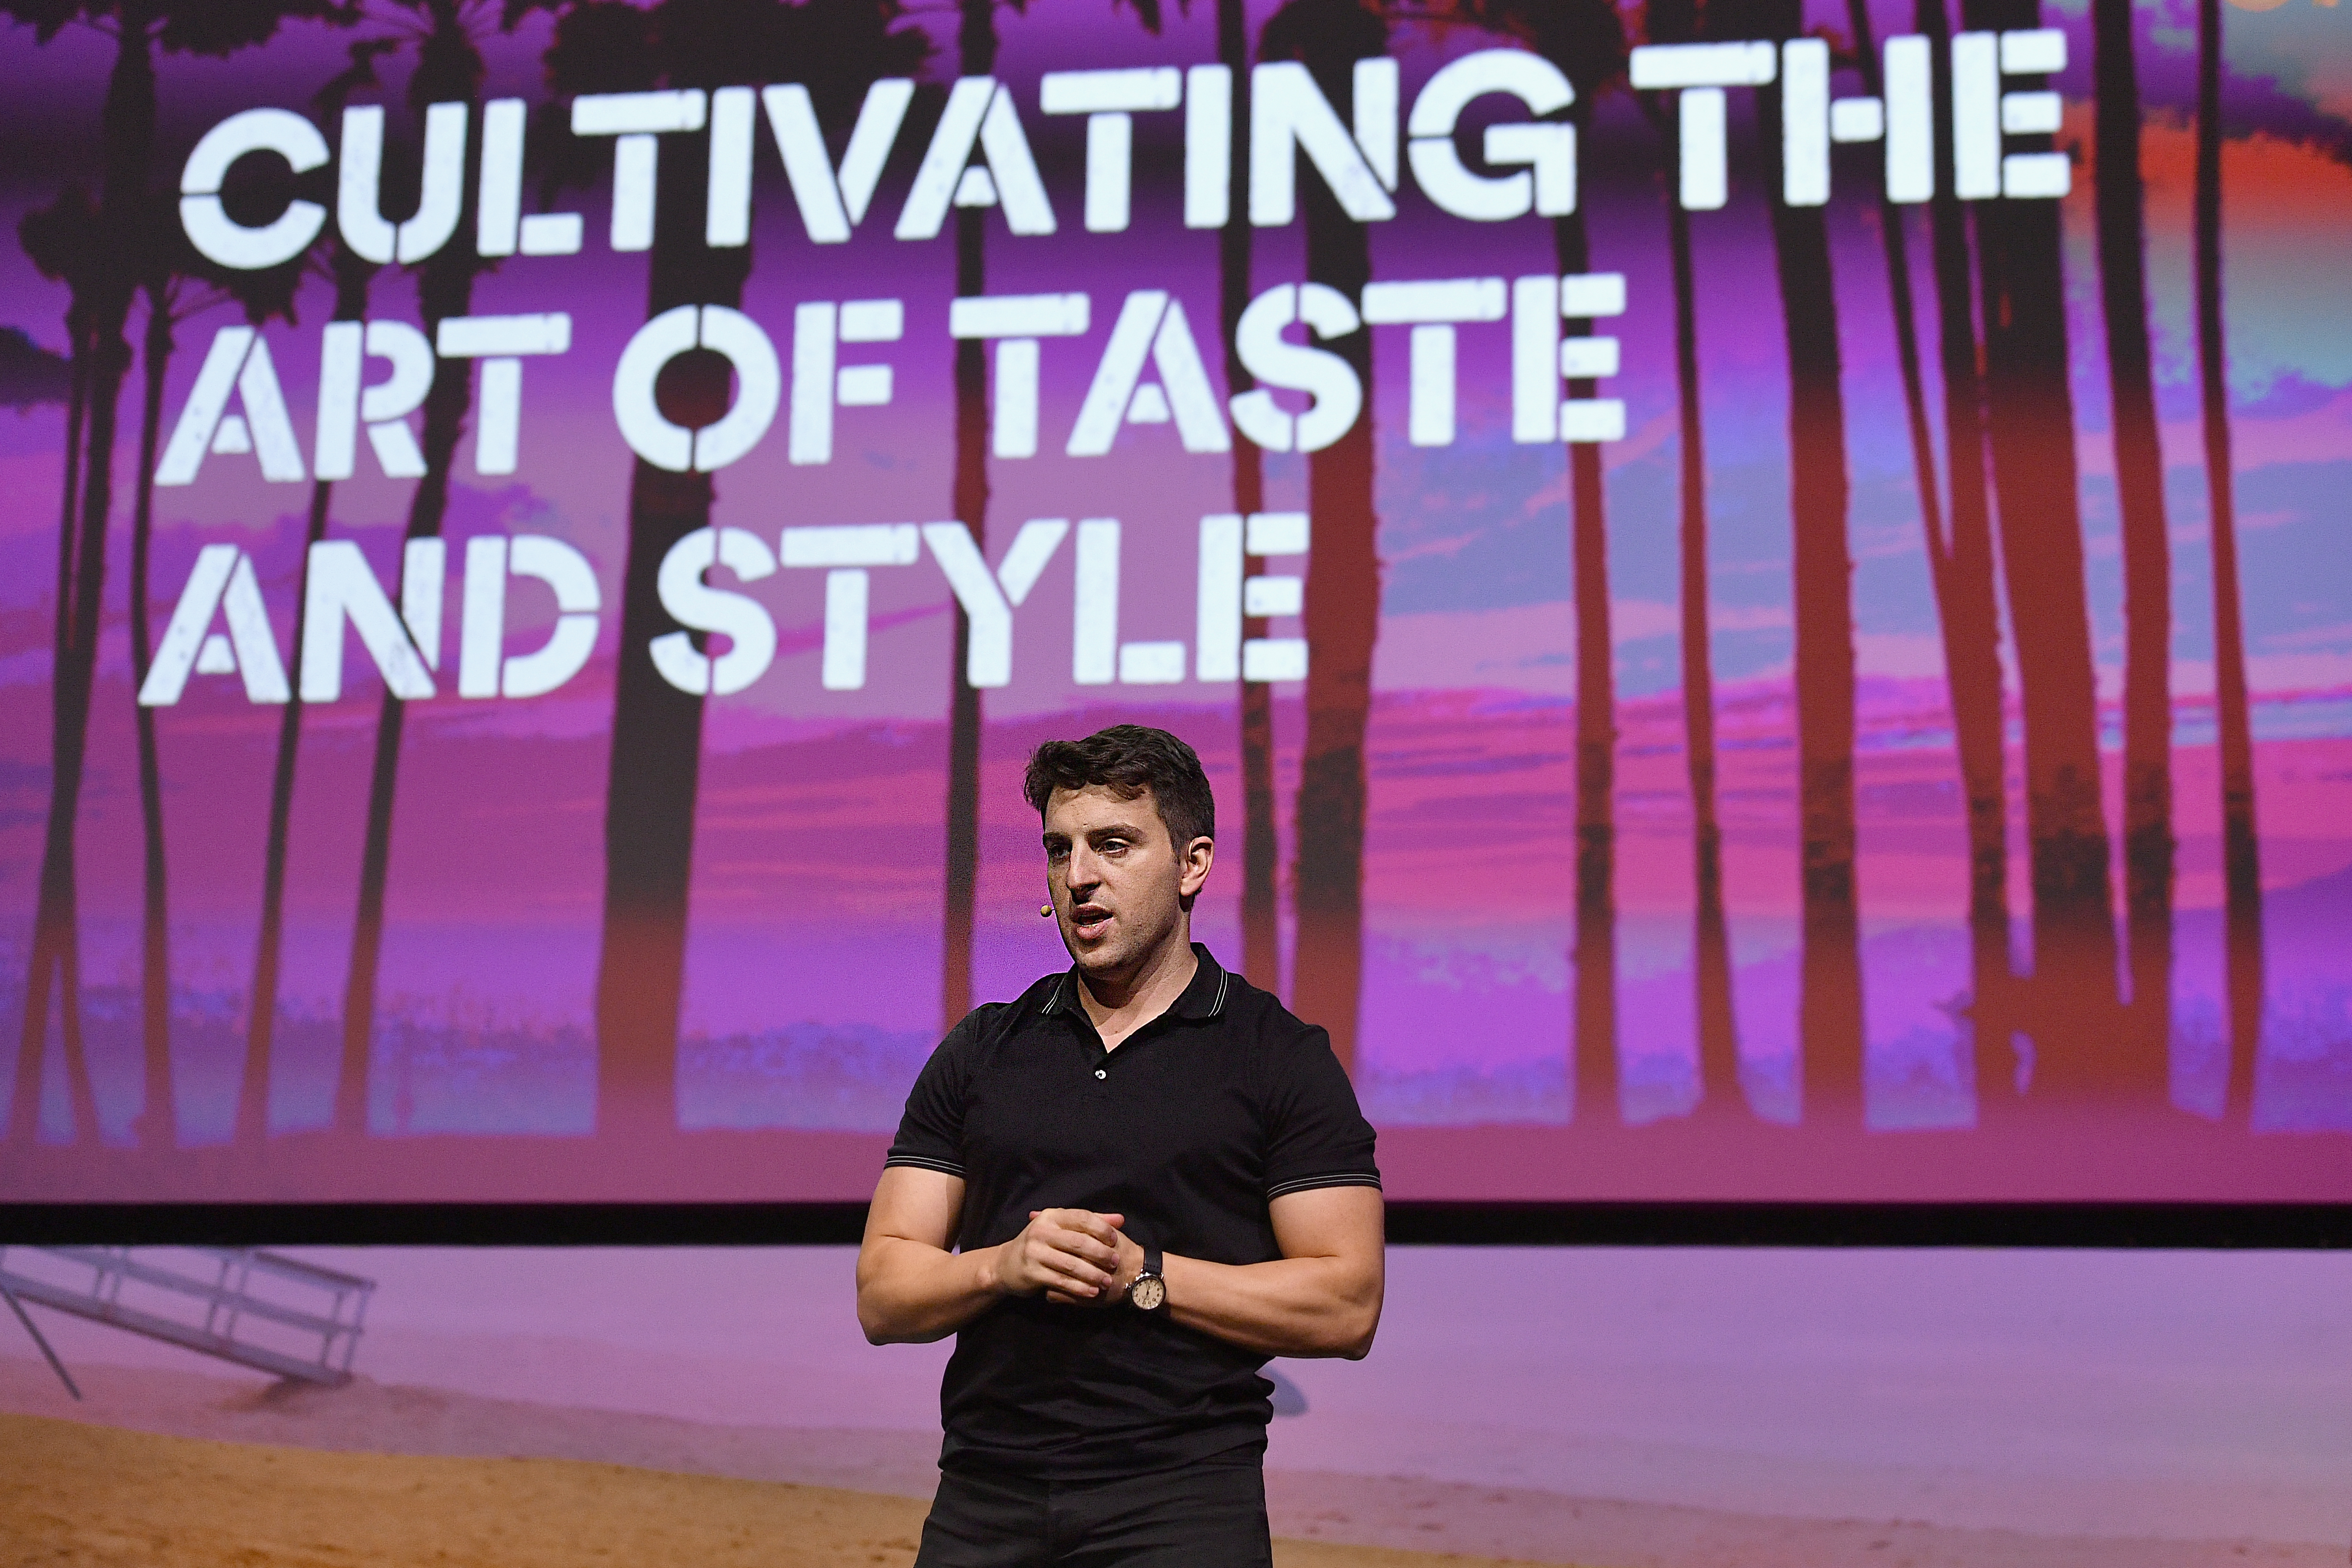 """Airbnb CEO Brian Chesky onstage in front of a sign reading, """"Cultivating the art of taste and style."""""""